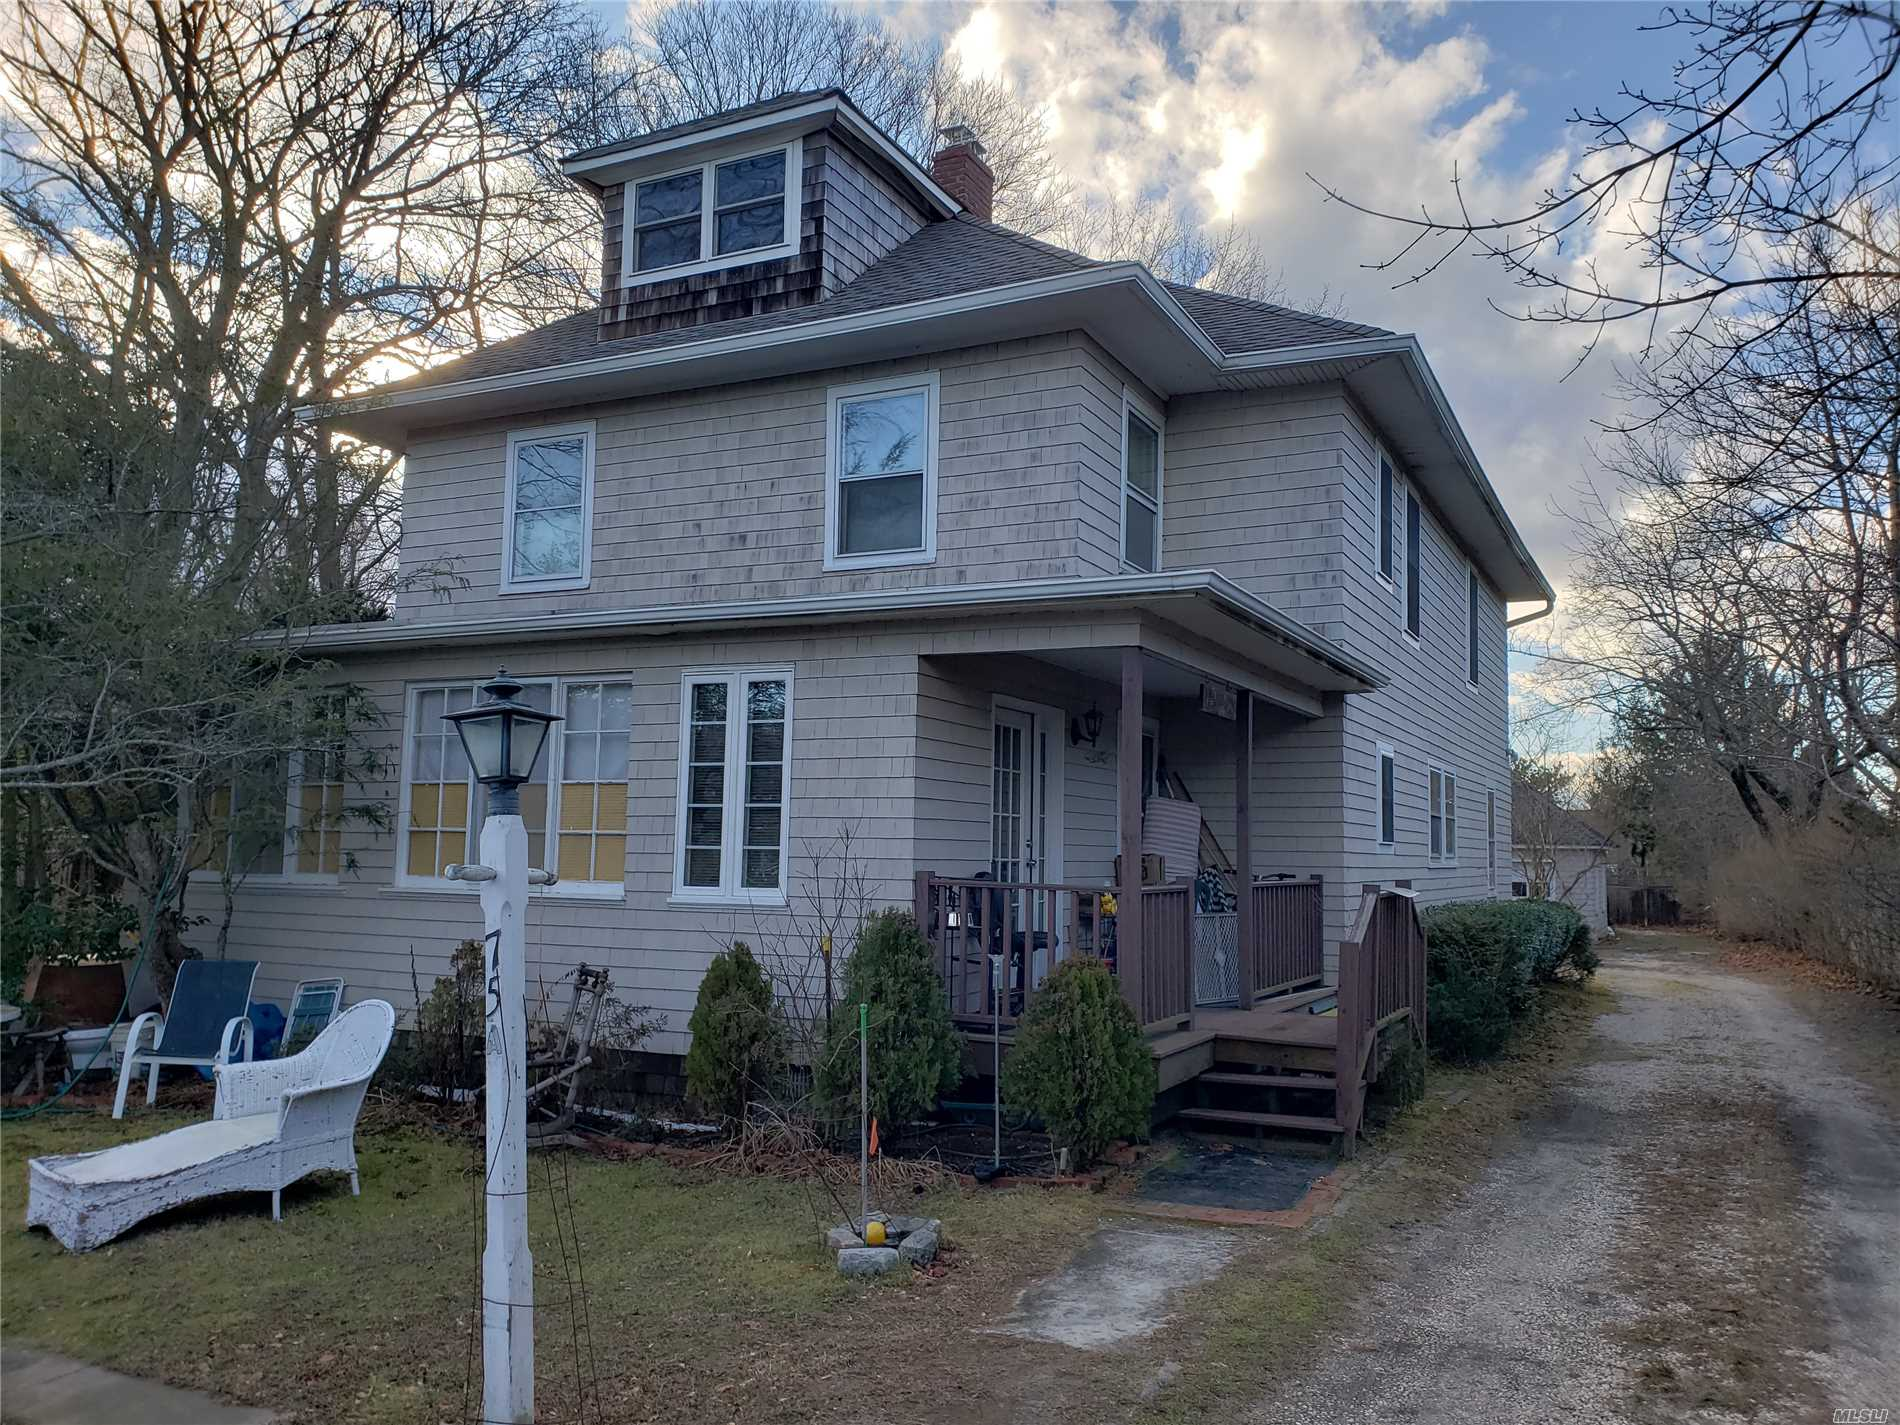 This 4 Bedroom 4.5 Bathroom Colonial Style Home Has Great Potential! The Roof, Siding, And Heating System Has Been Updated Within The Last 5 Years. The Interior Needs Renovation. Great Added Value Opportunity!